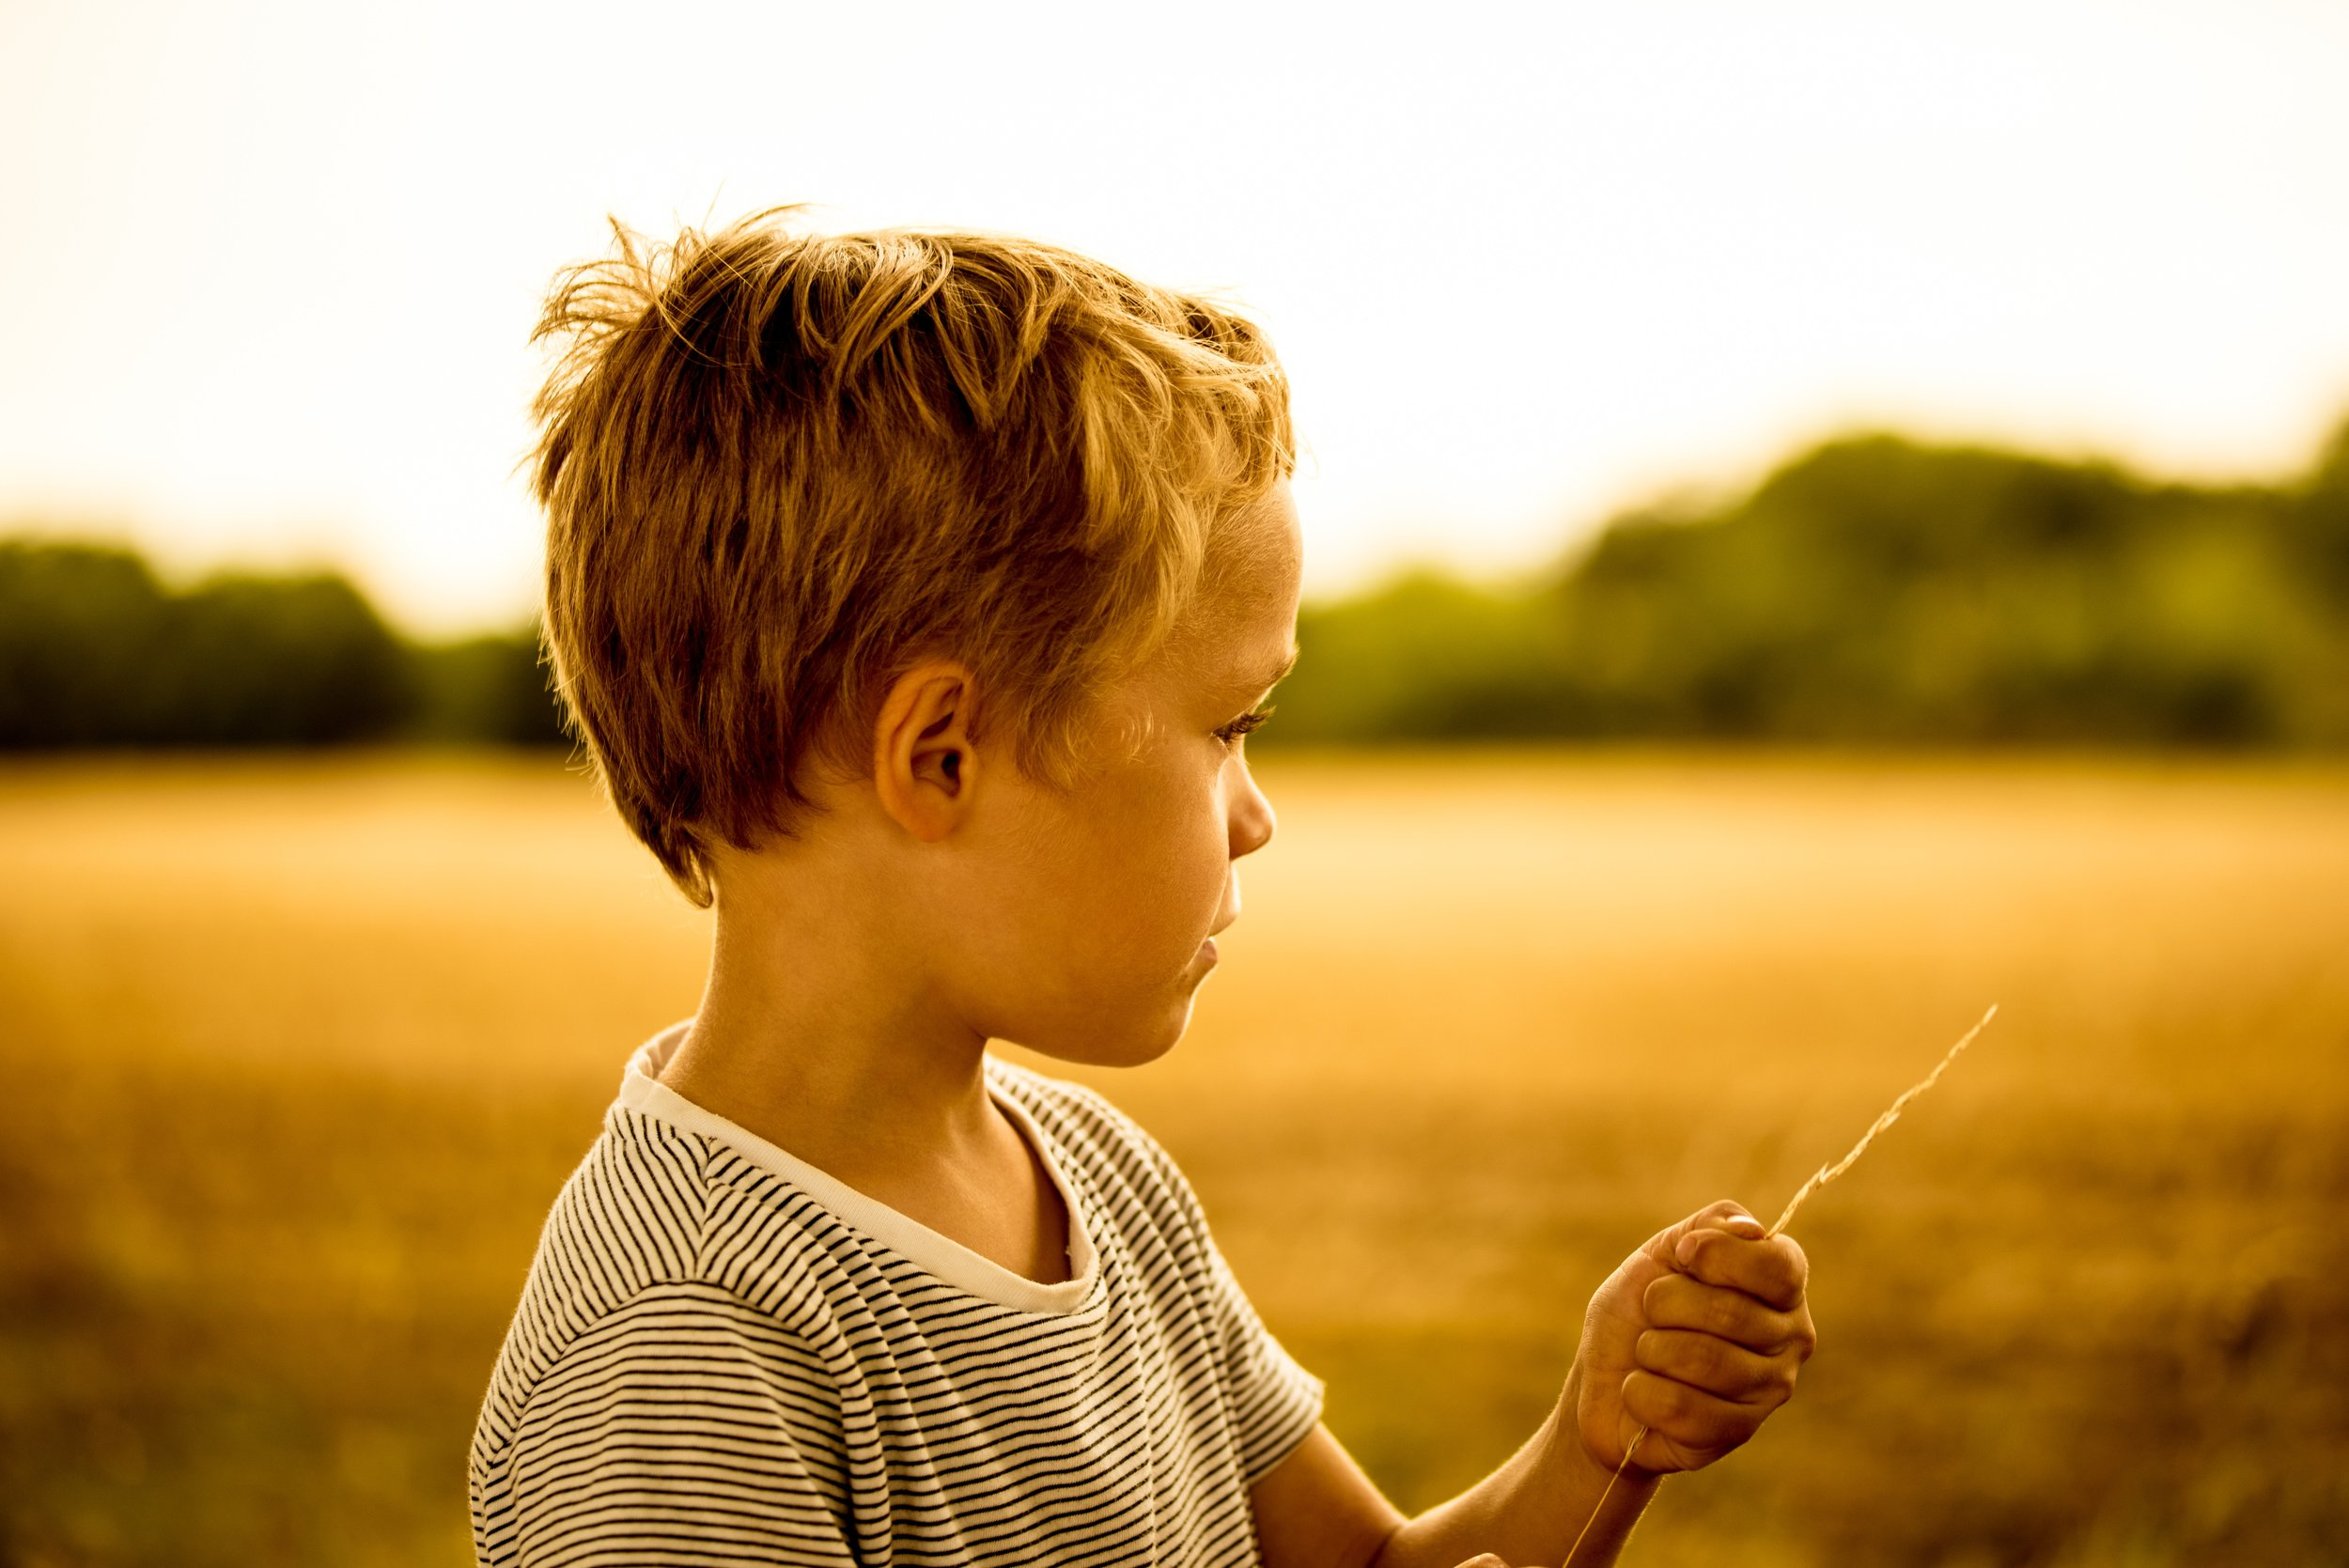 what does a boy need spiritually?